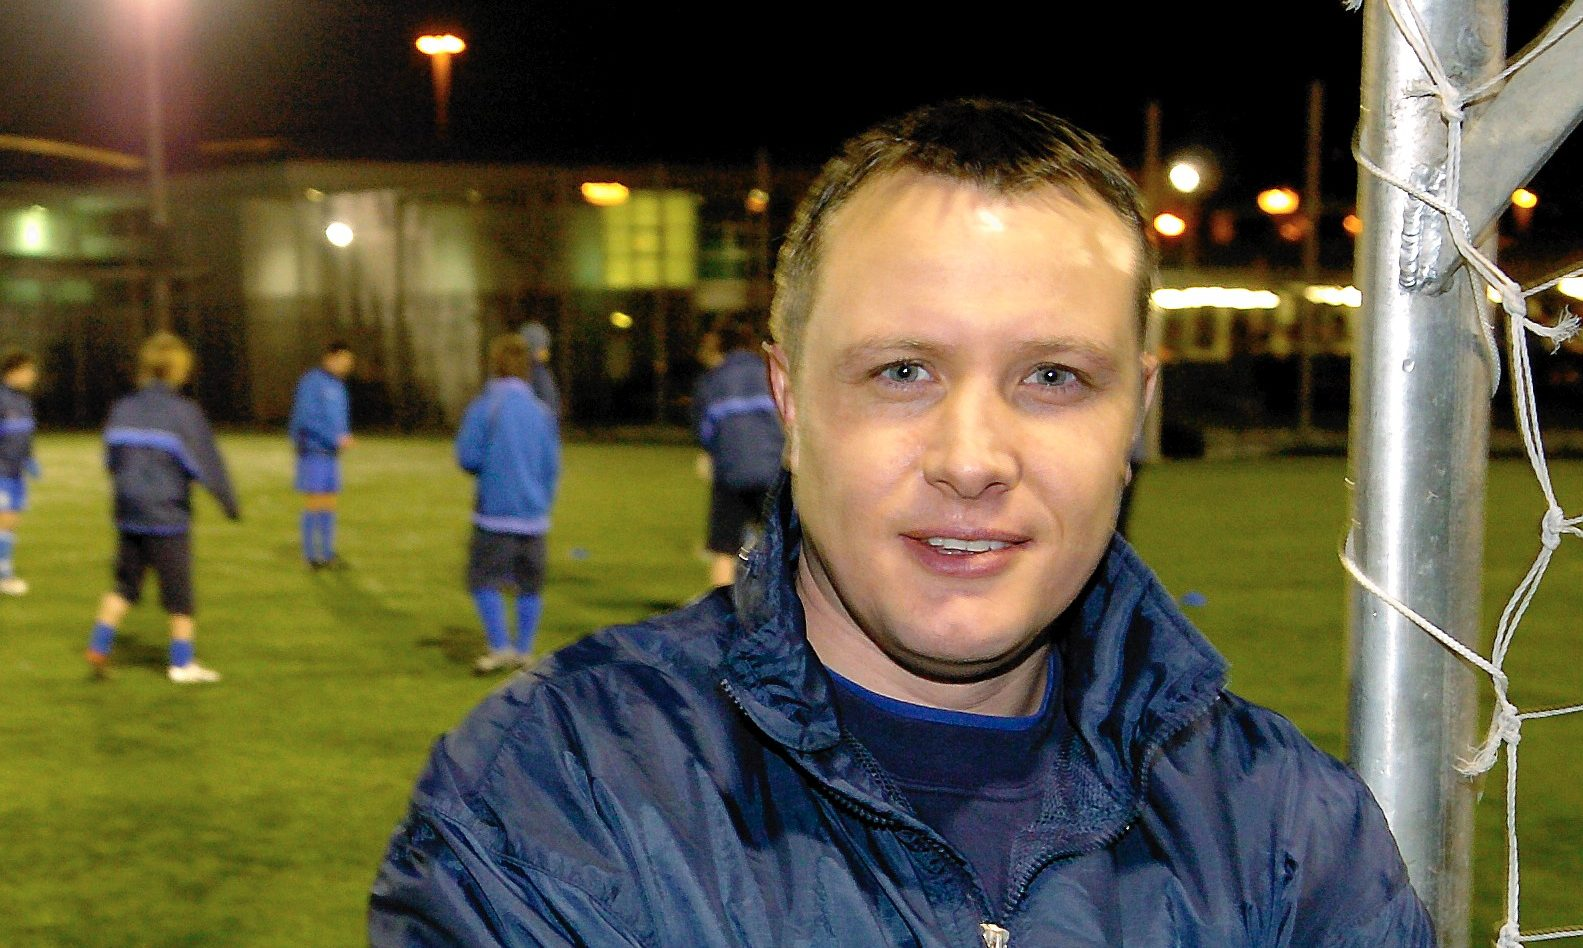 David Hagen played for Peterhead FC between 2004-2006.         .